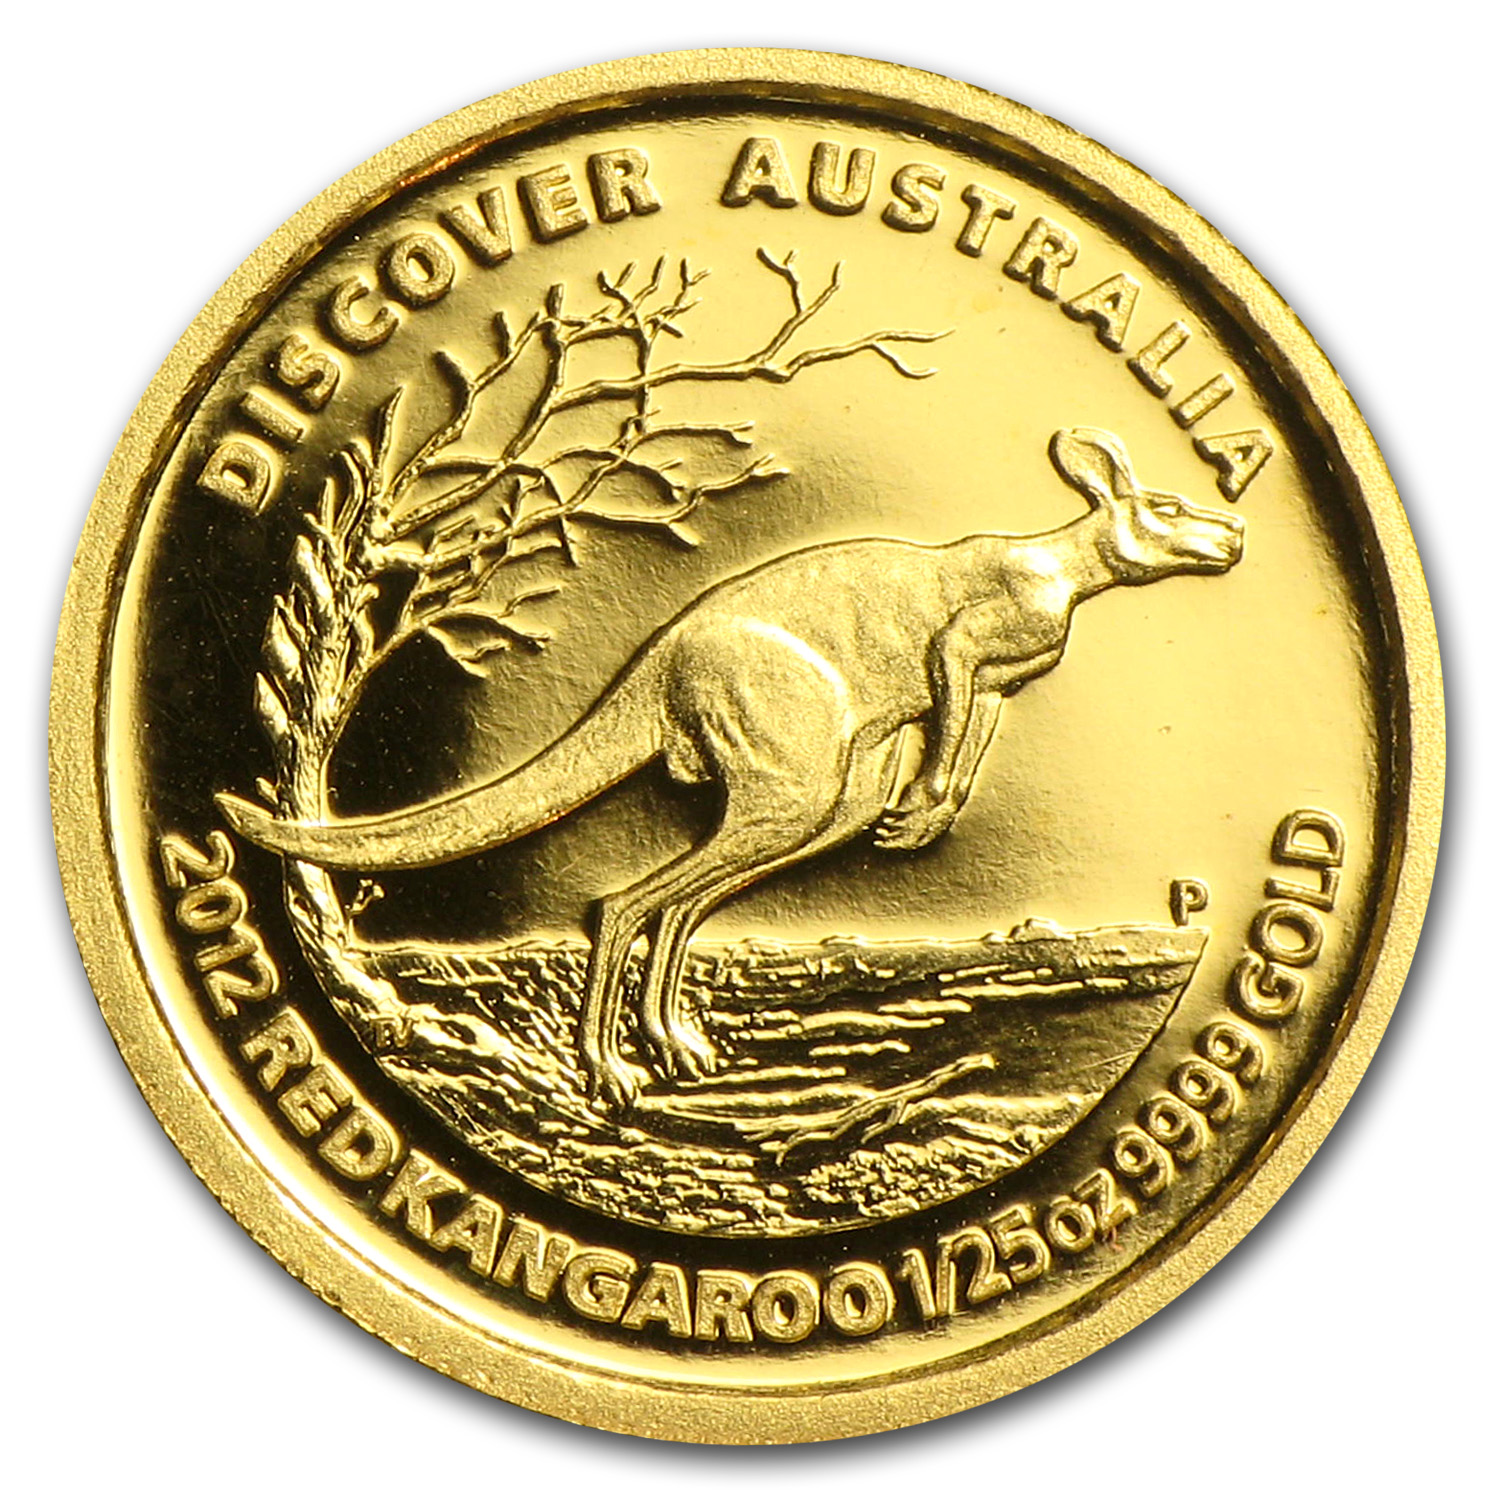 1/25 oz Proof Gold Discover Australia Series- Random Years